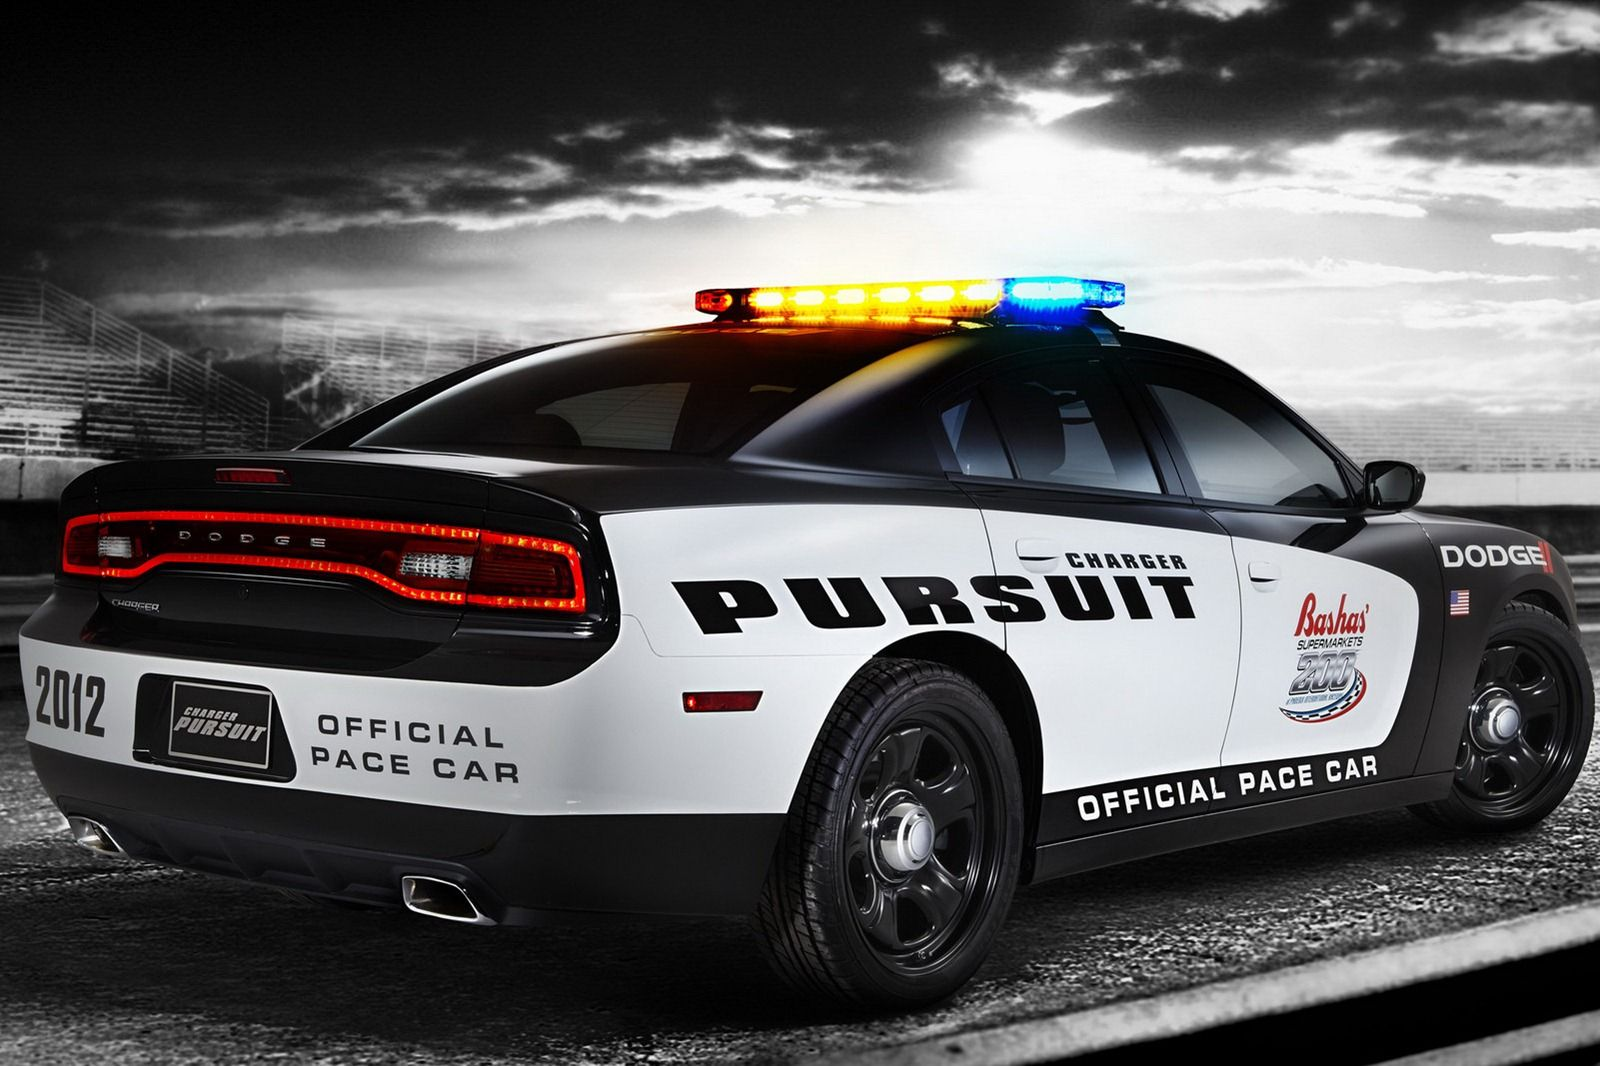 dodge challenger police car hd desktop background. Black Bedroom Furniture Sets. Home Design Ideas